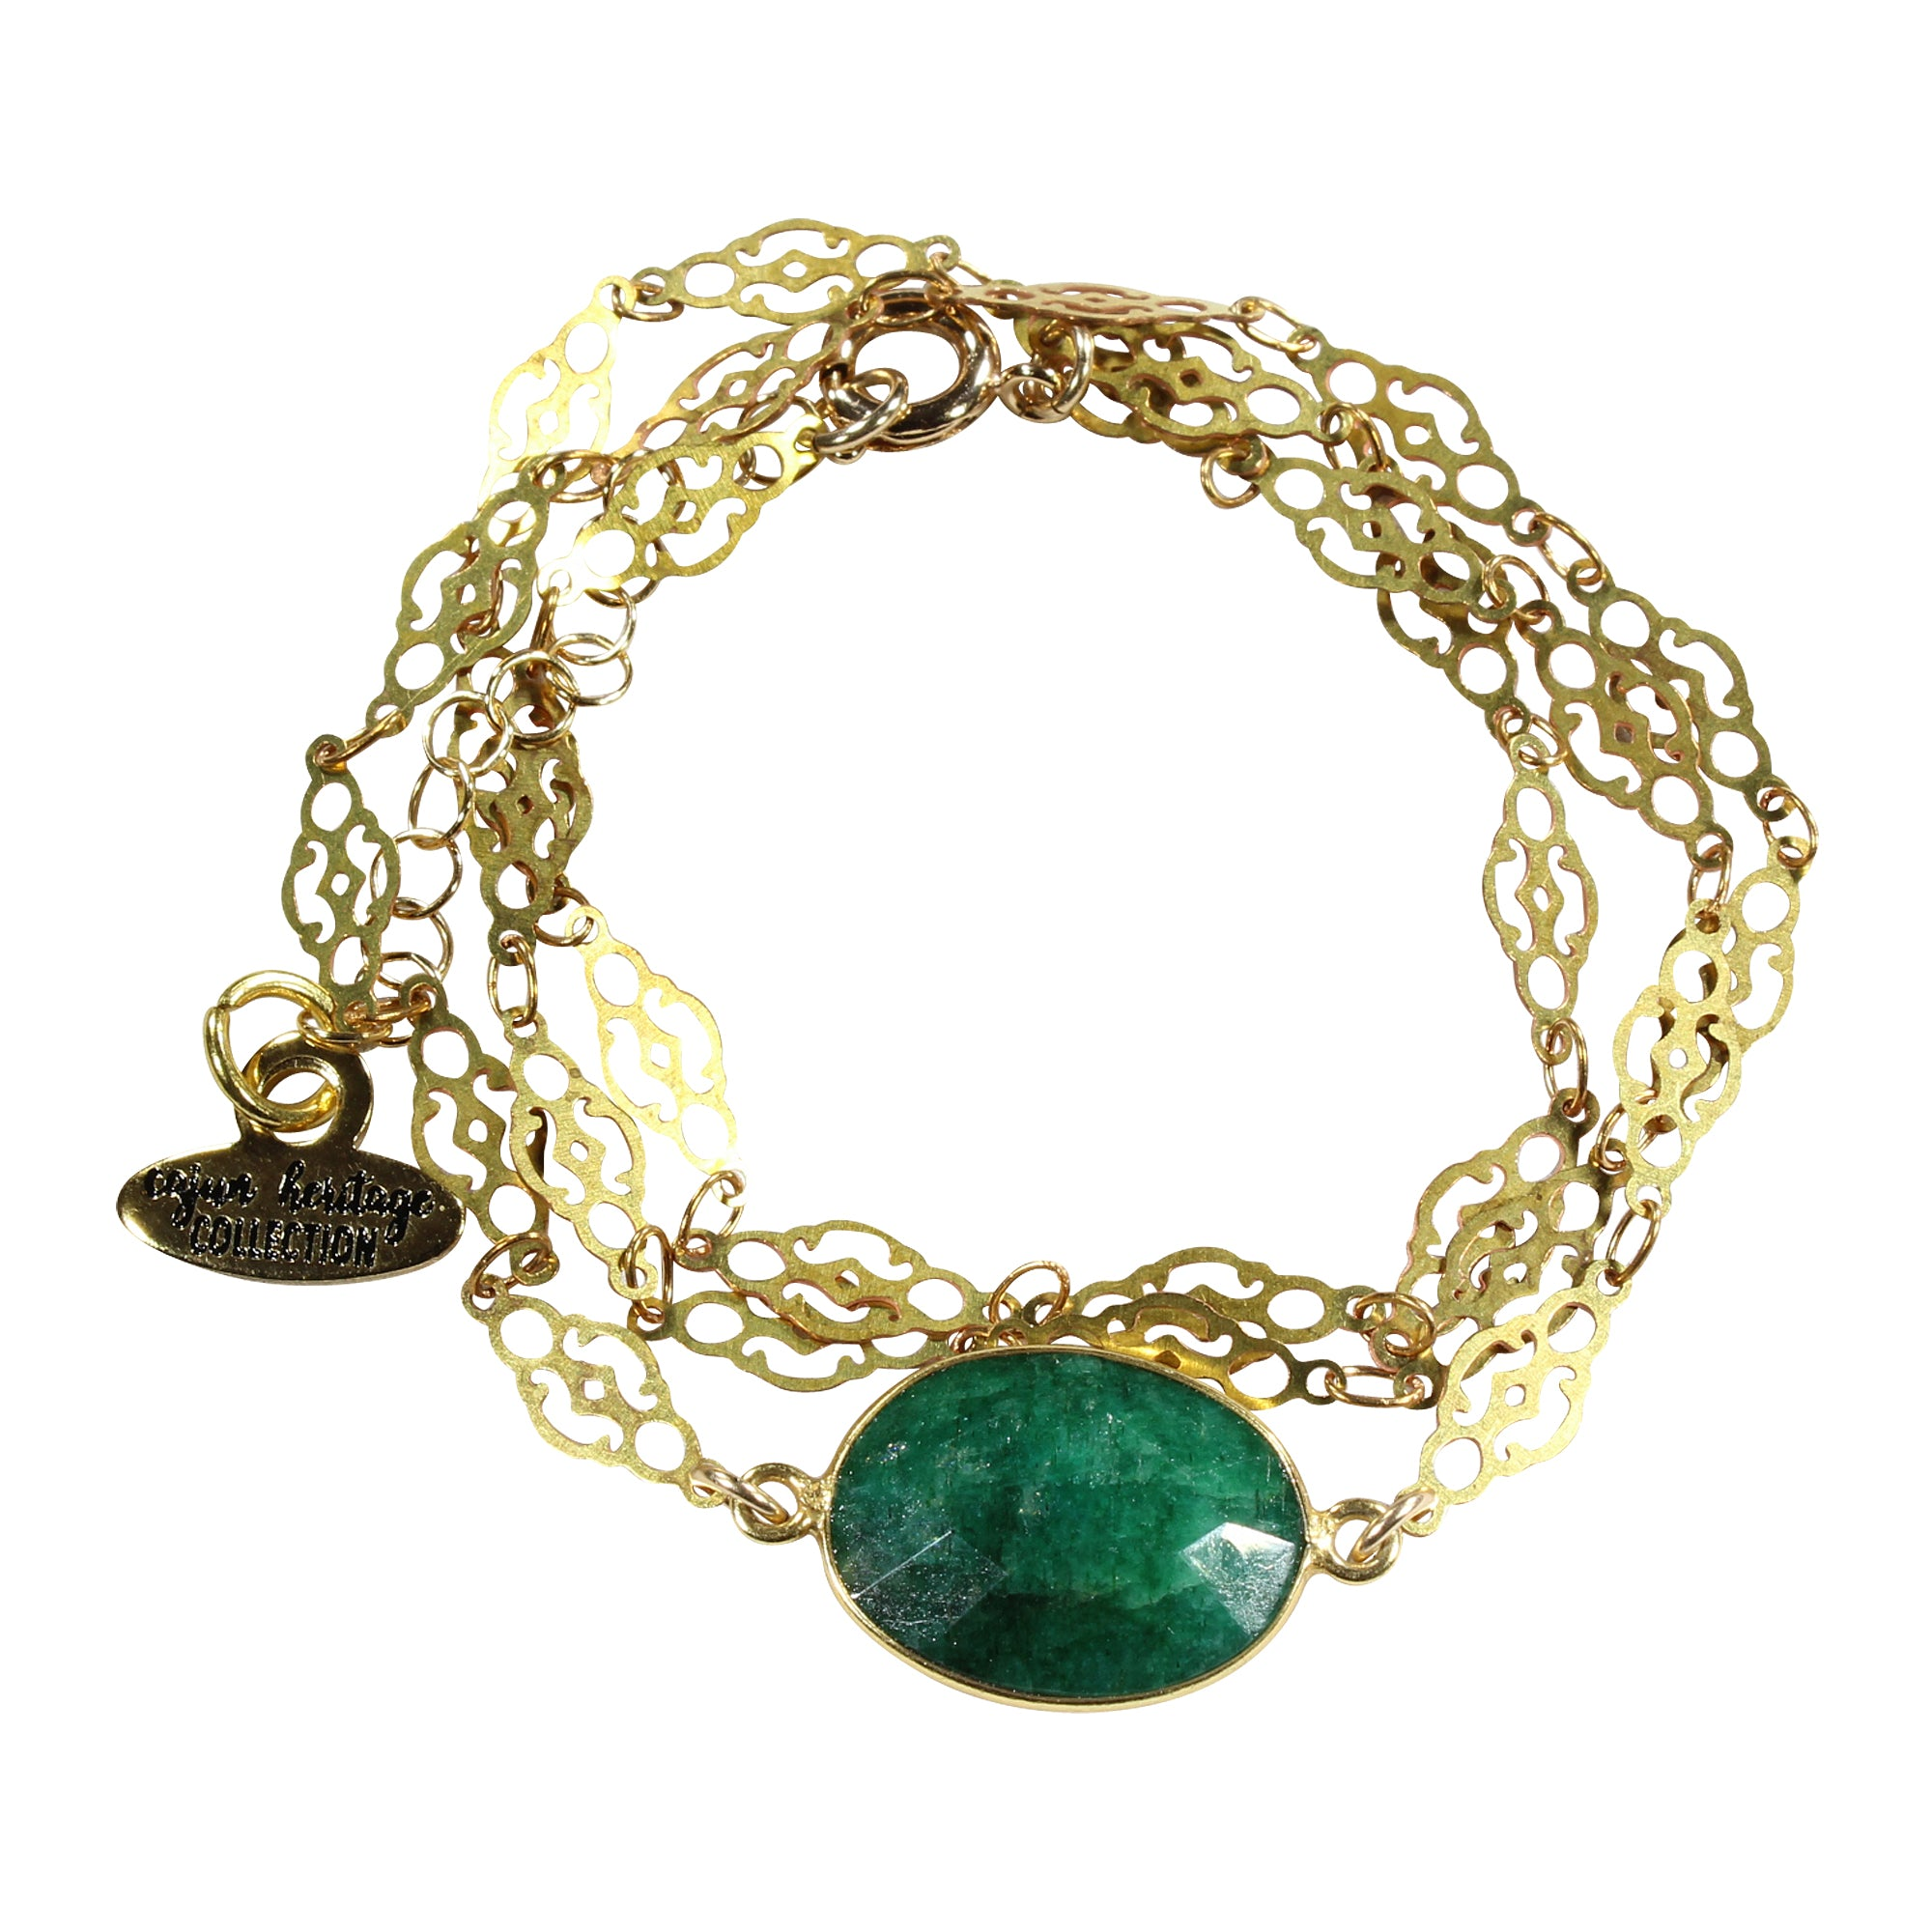 modern diamond for bracelet sale bracelets emerald at circa org modernist jewelry free form id gold j